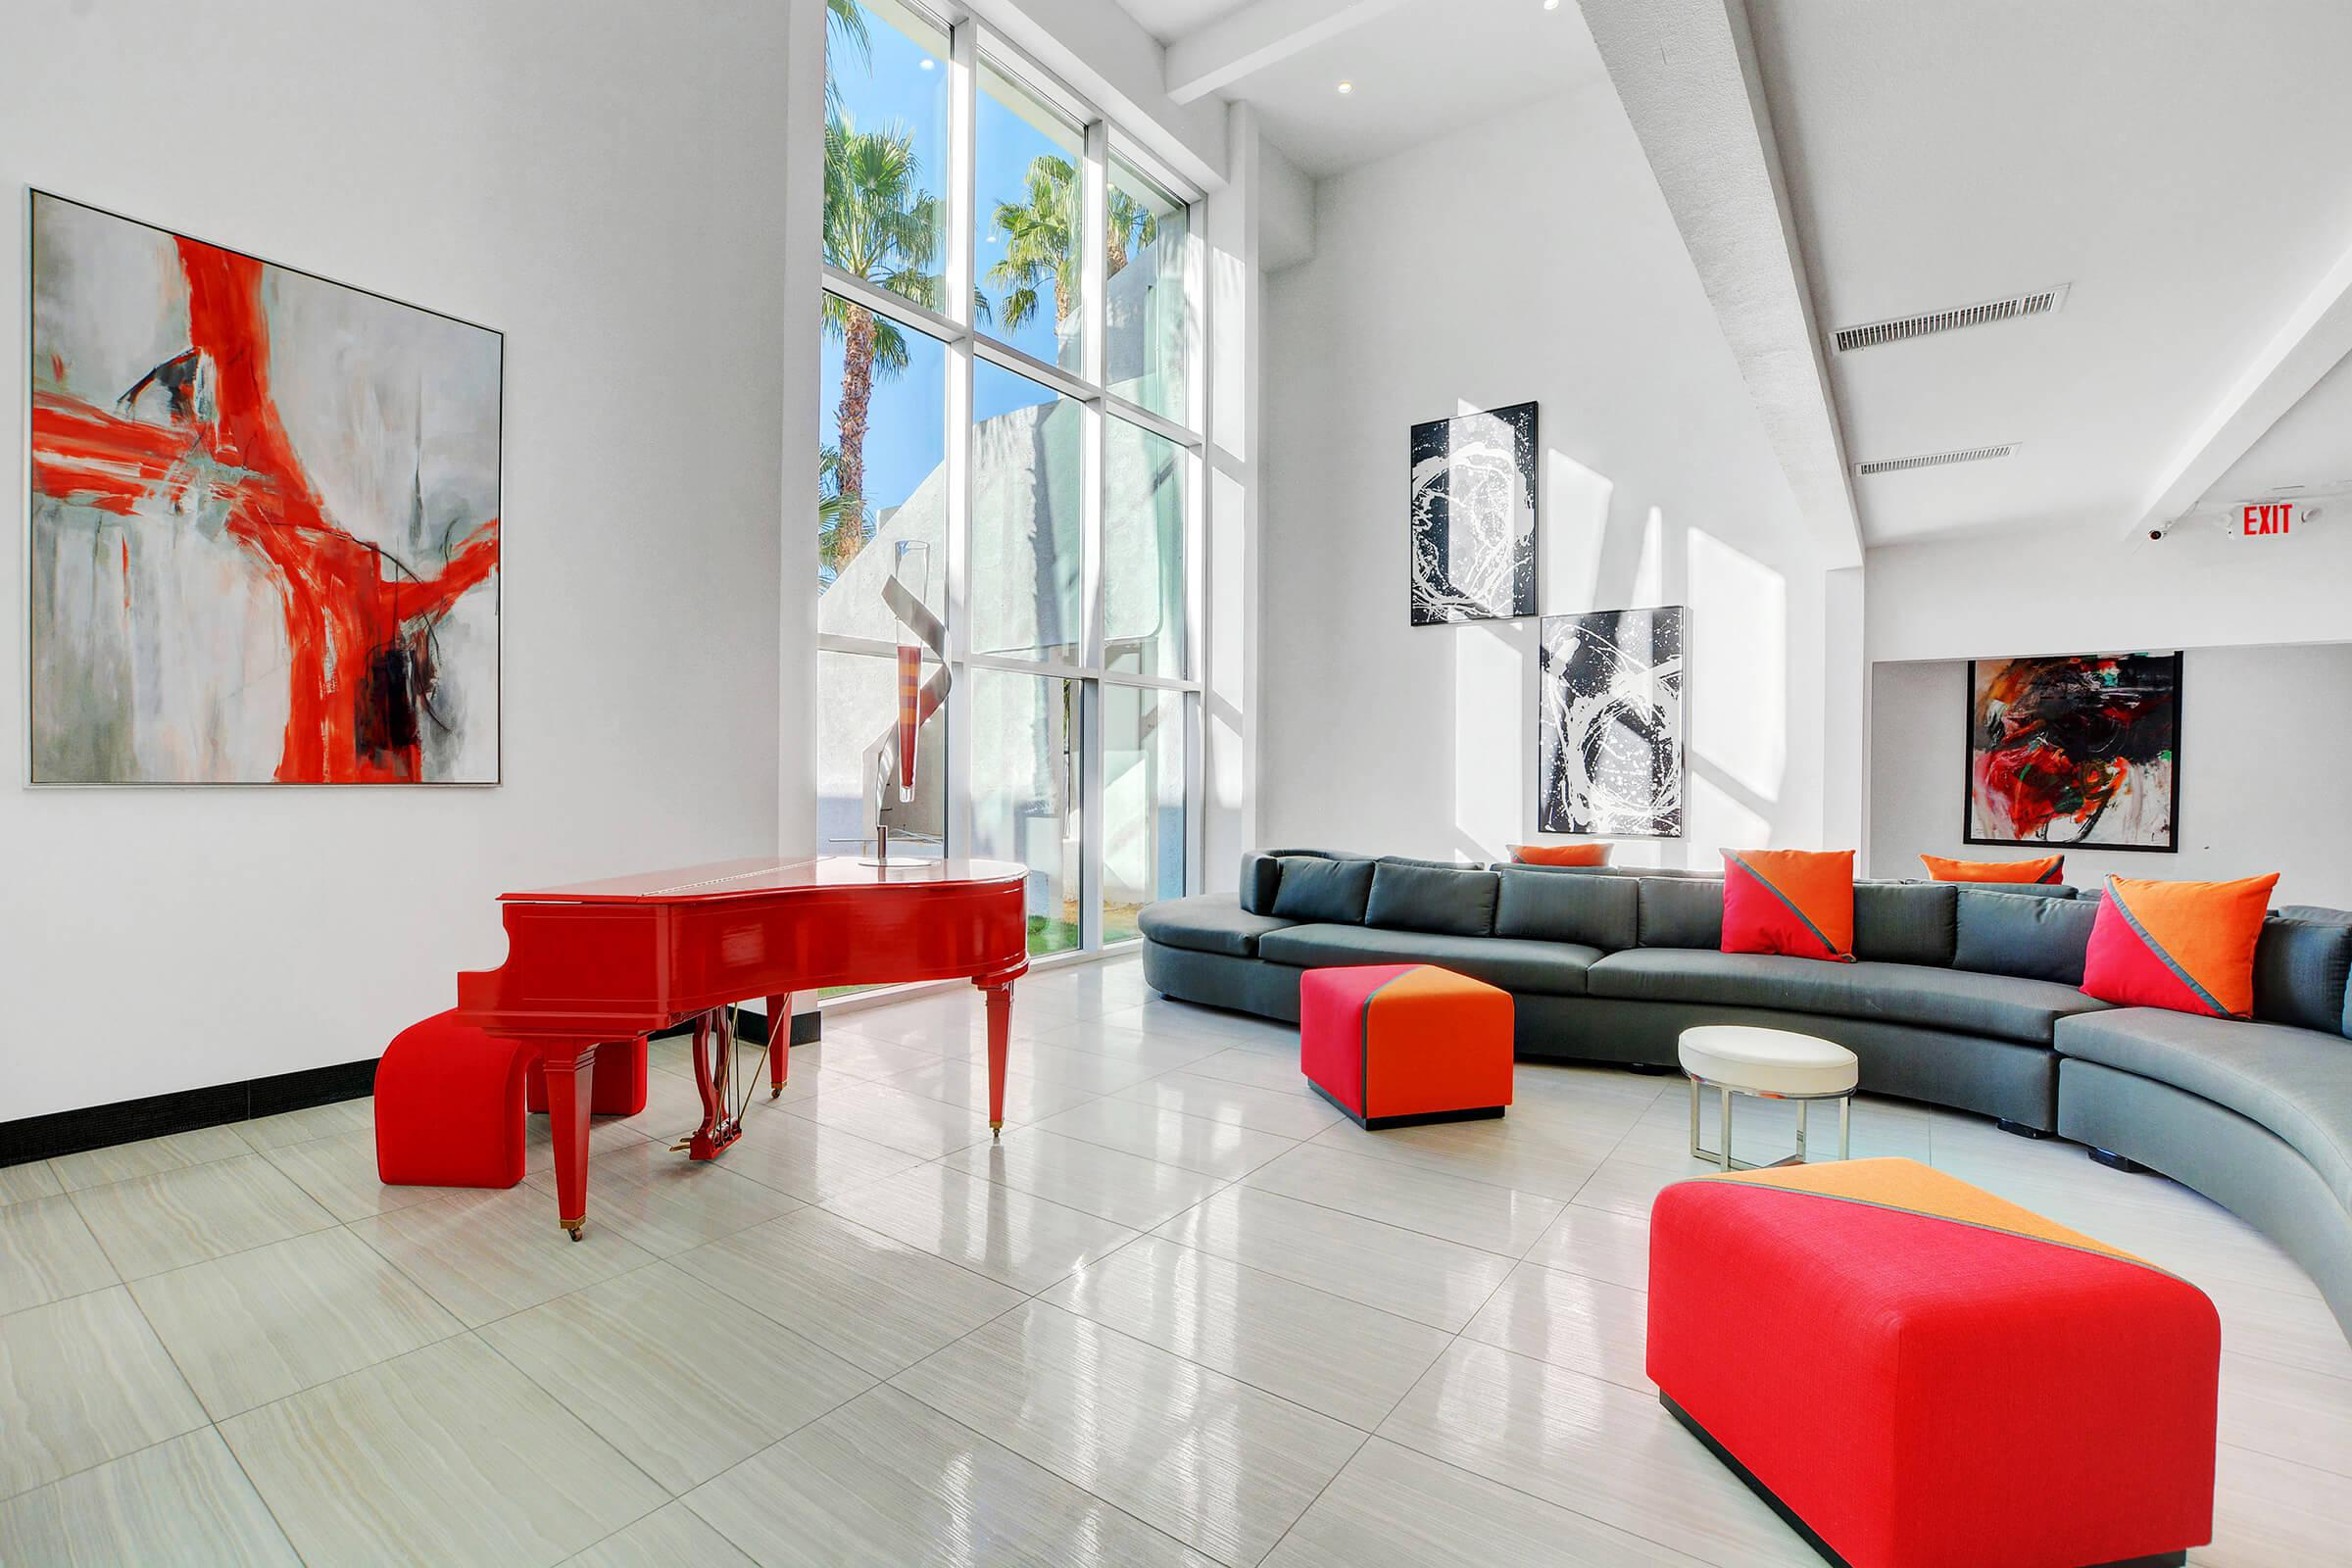 a large red chair in a room